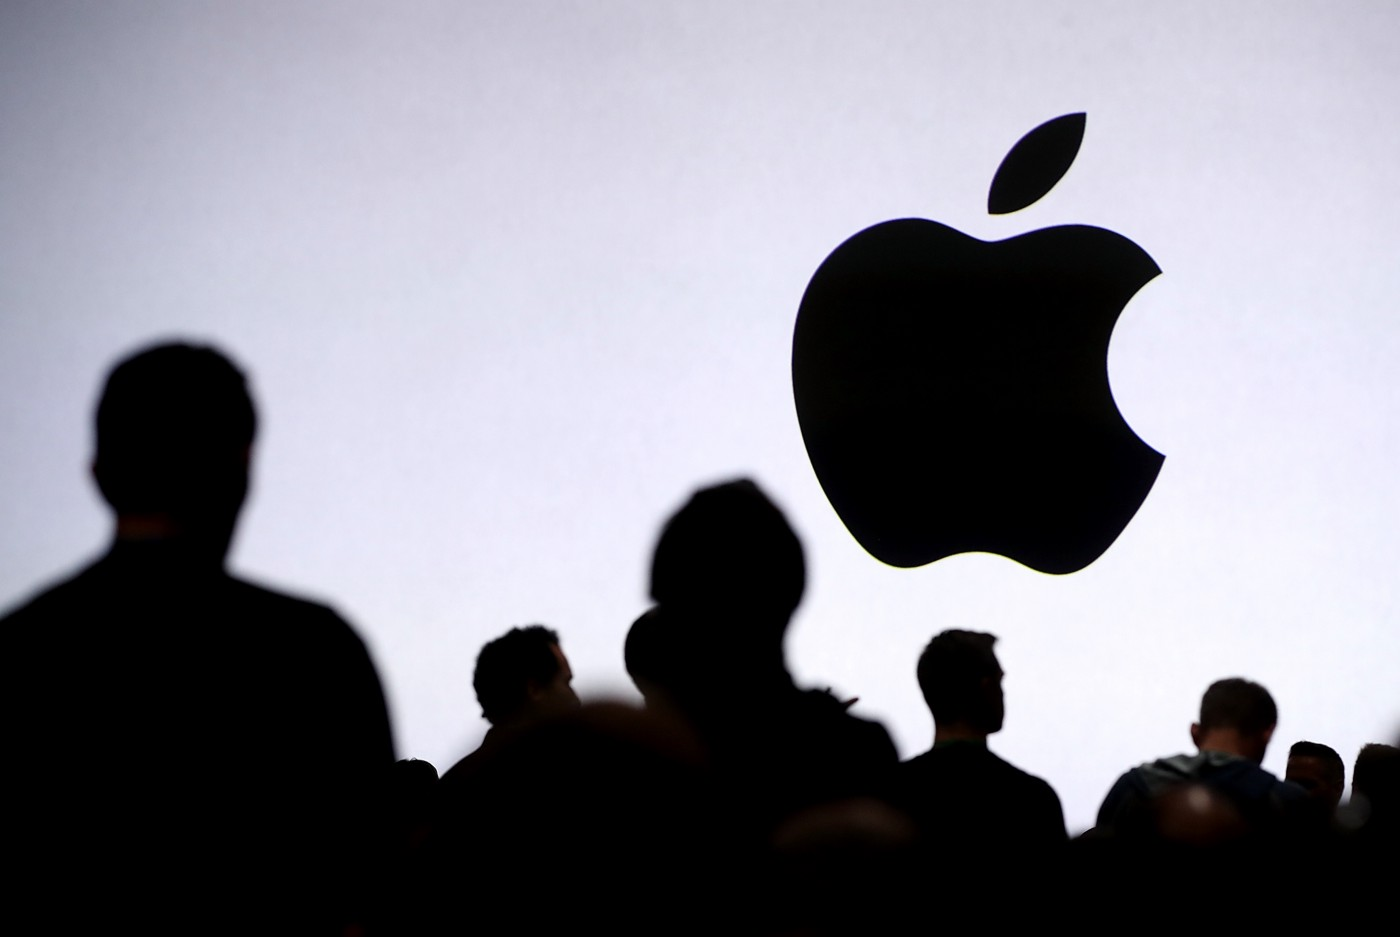 Mark Gurman: Apple Planning to host multiple events this fall